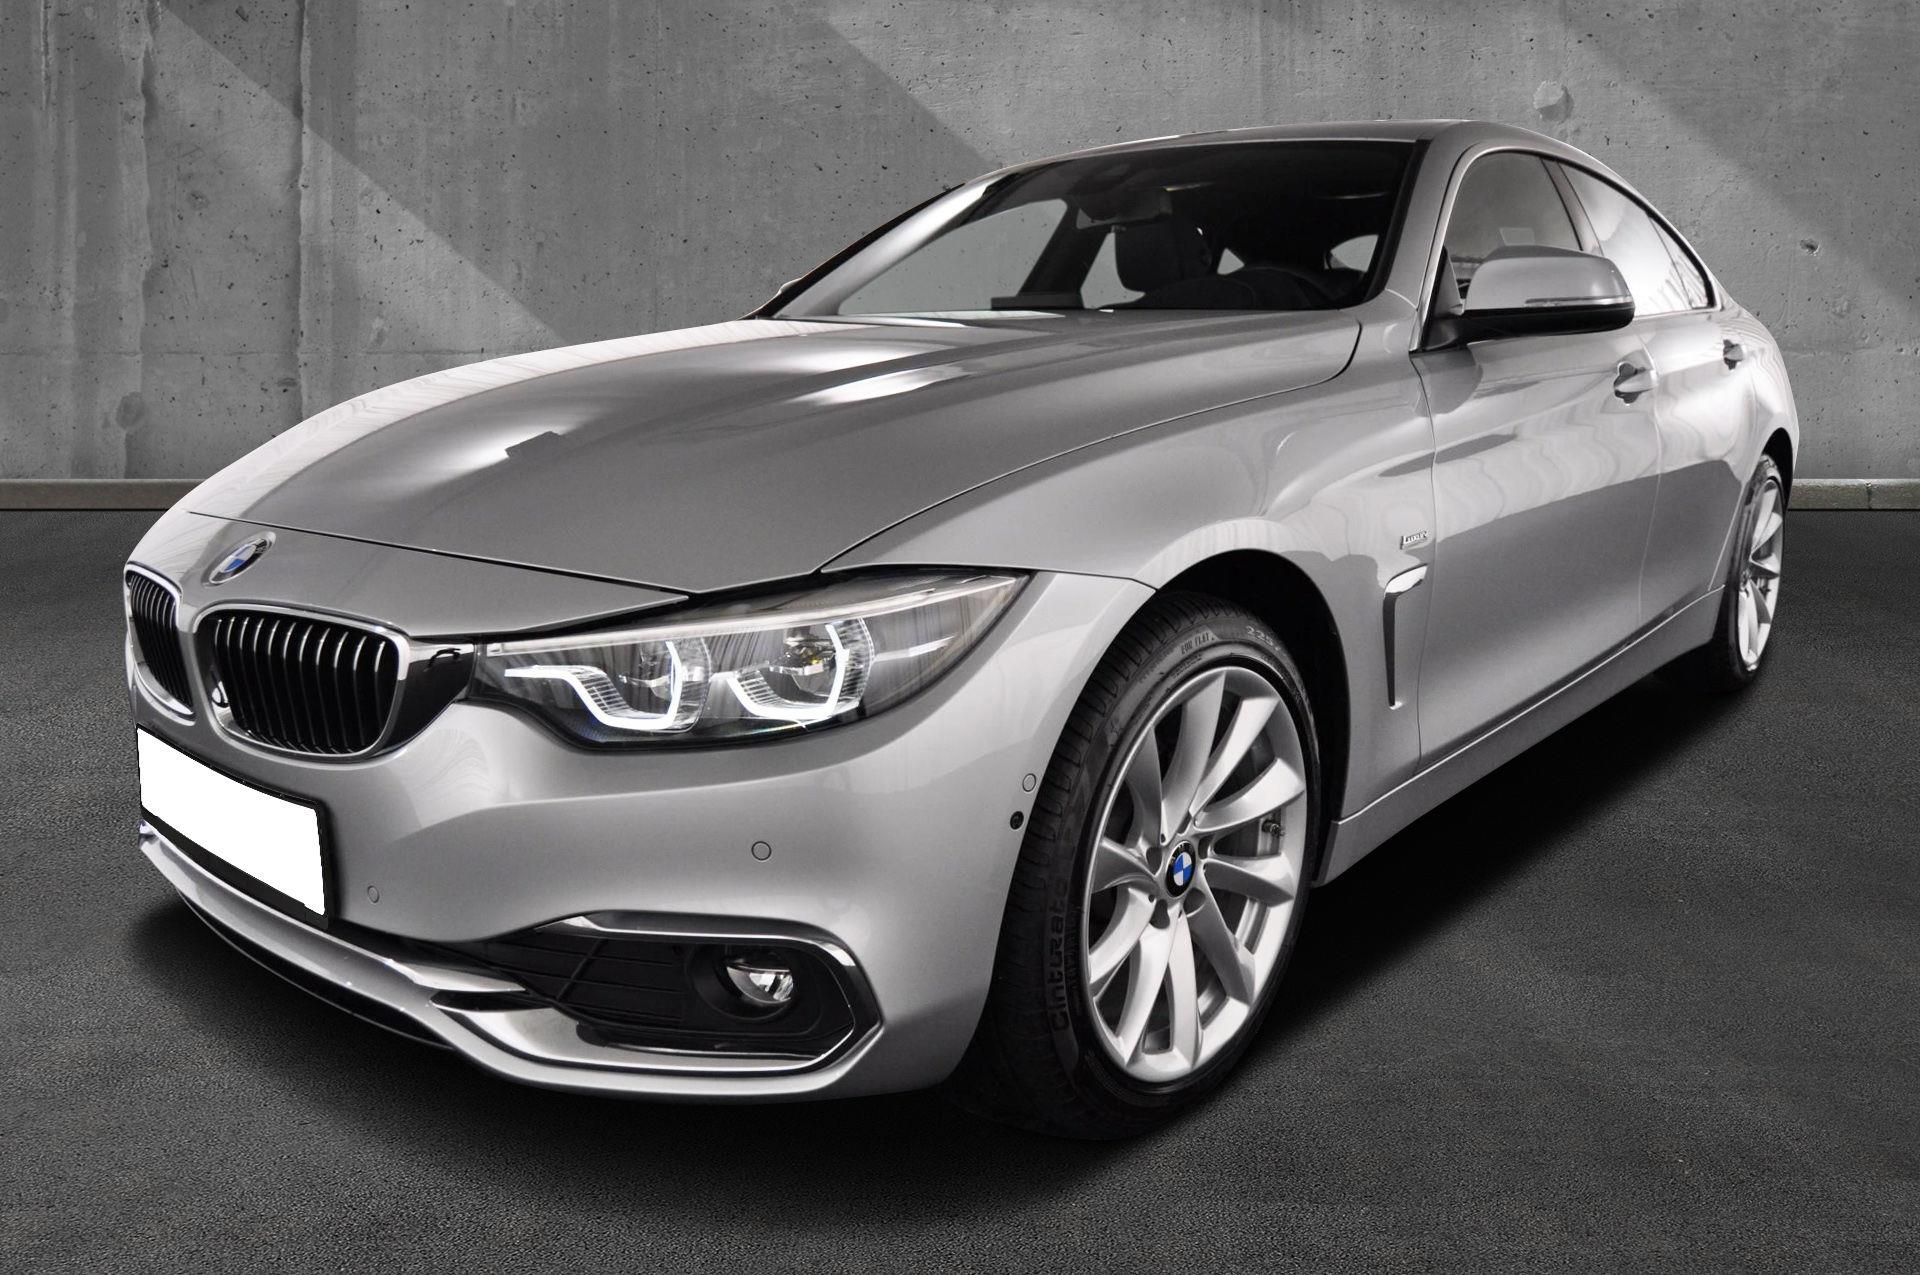 bmw-420da-xdrive-g-coupe-luxury-lednavd-assgsd18-0000228654.jpg